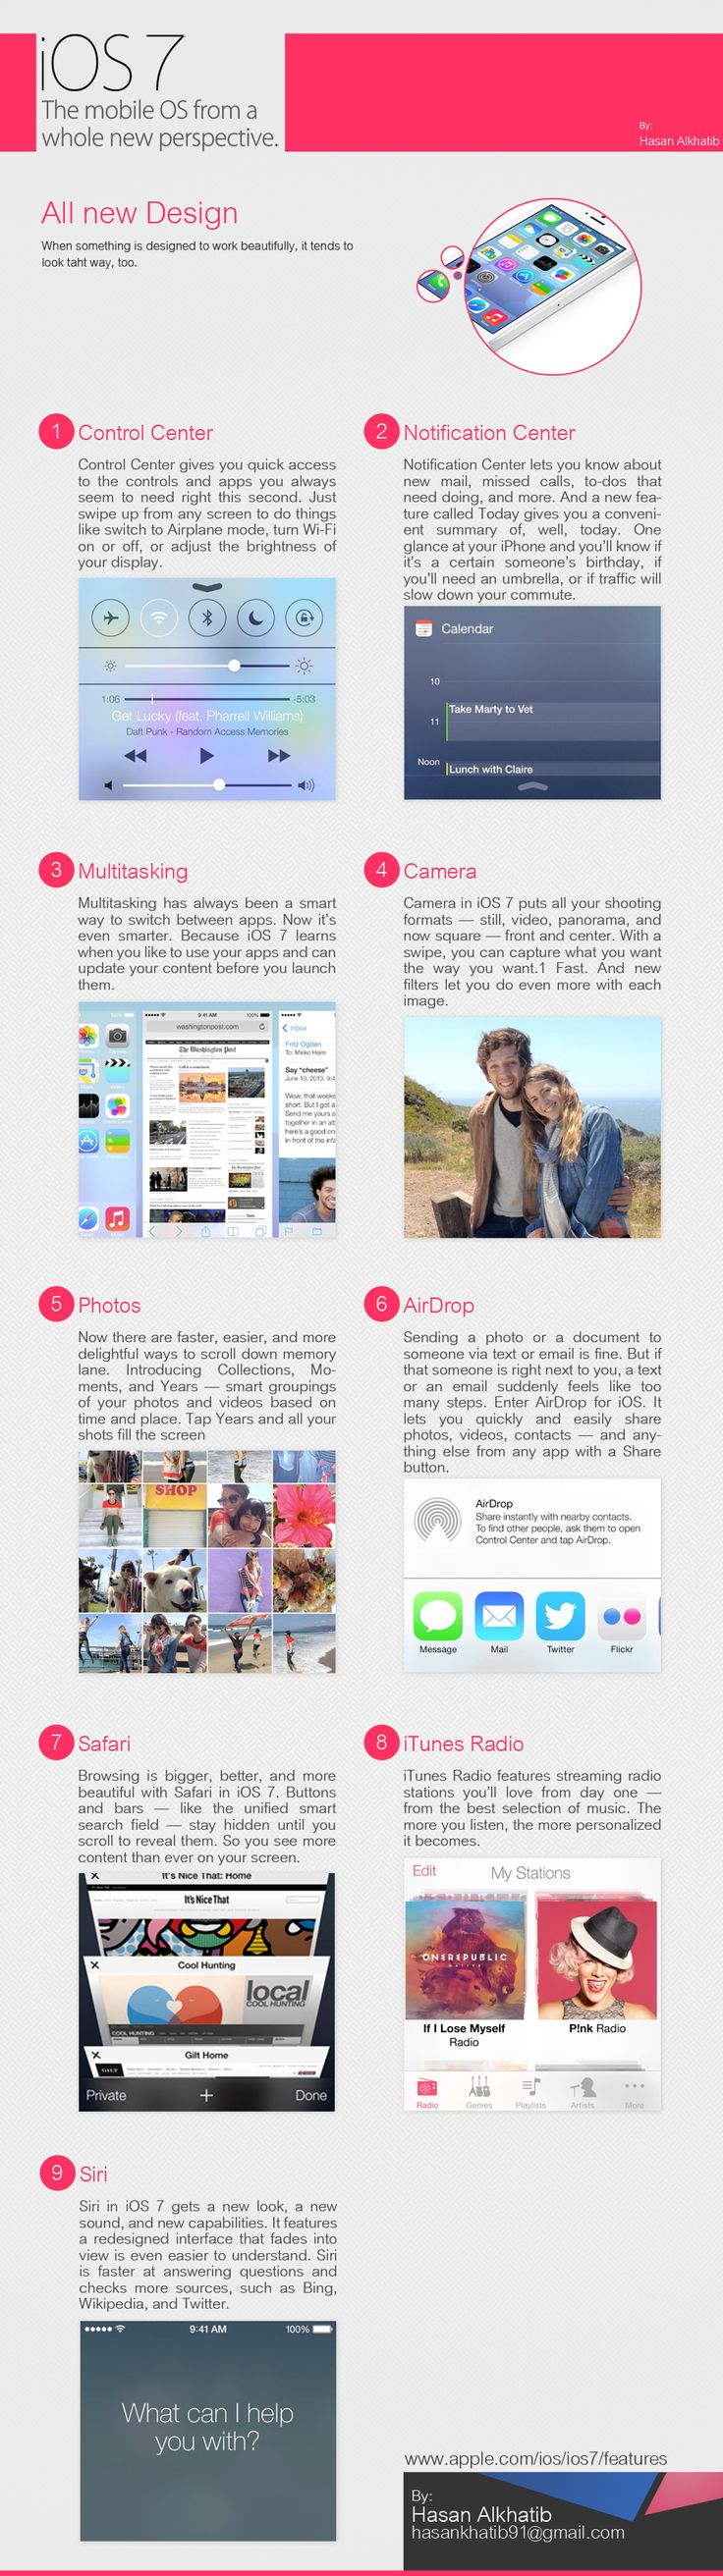 Complete iOS 7 Feature Overview #infographic